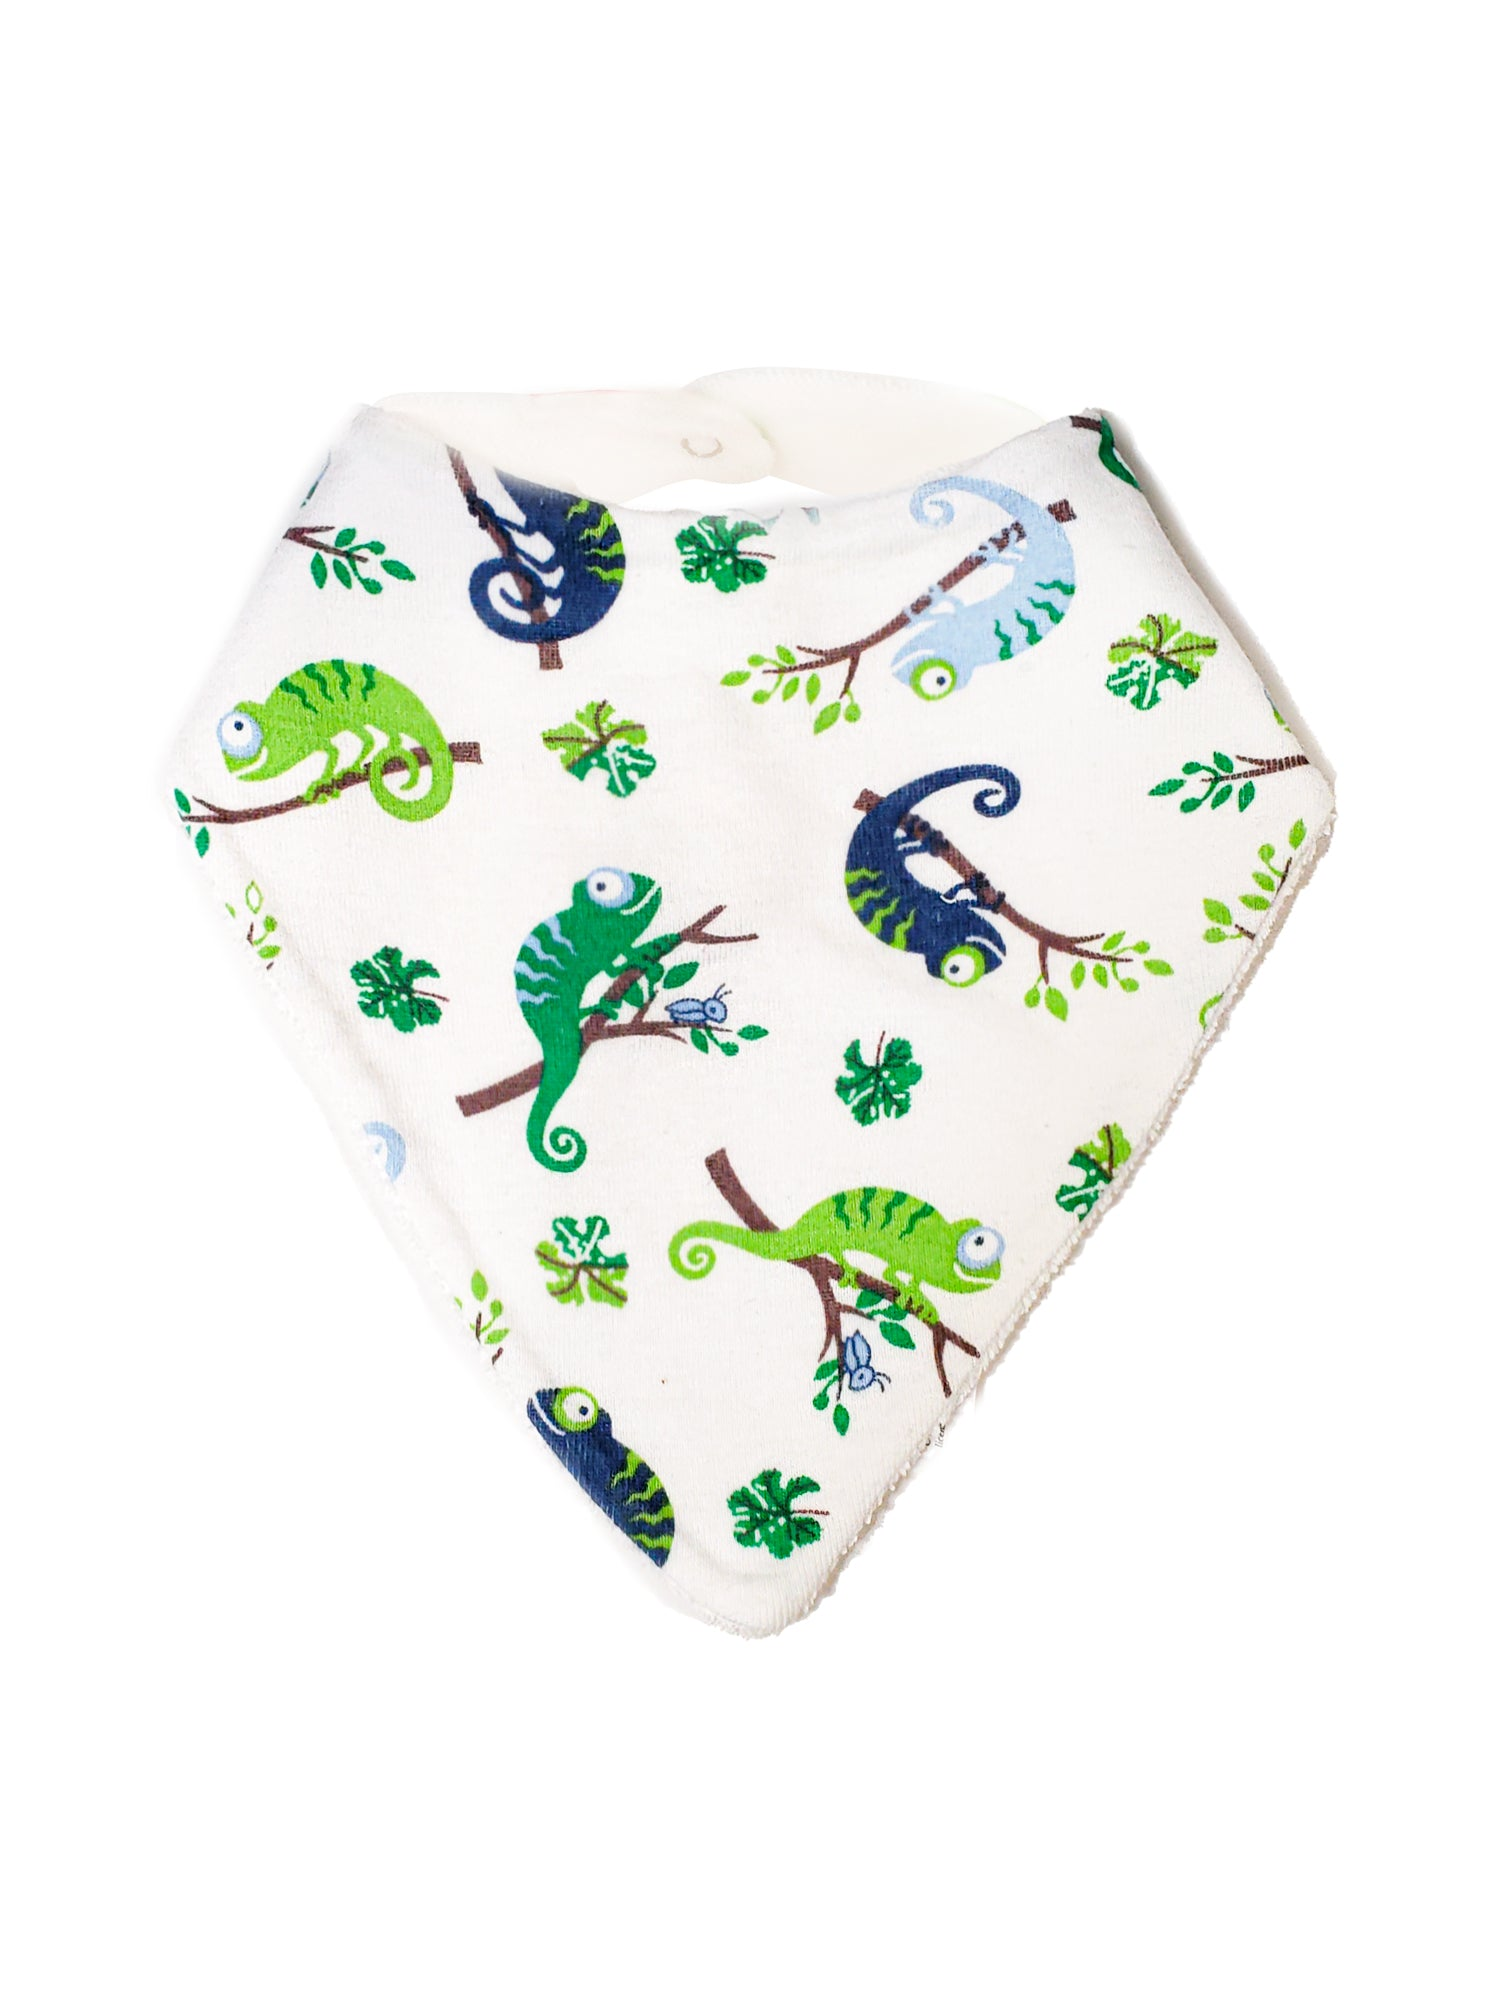 Bandana Style Scrappy Dribble Bib - Assorted Colors